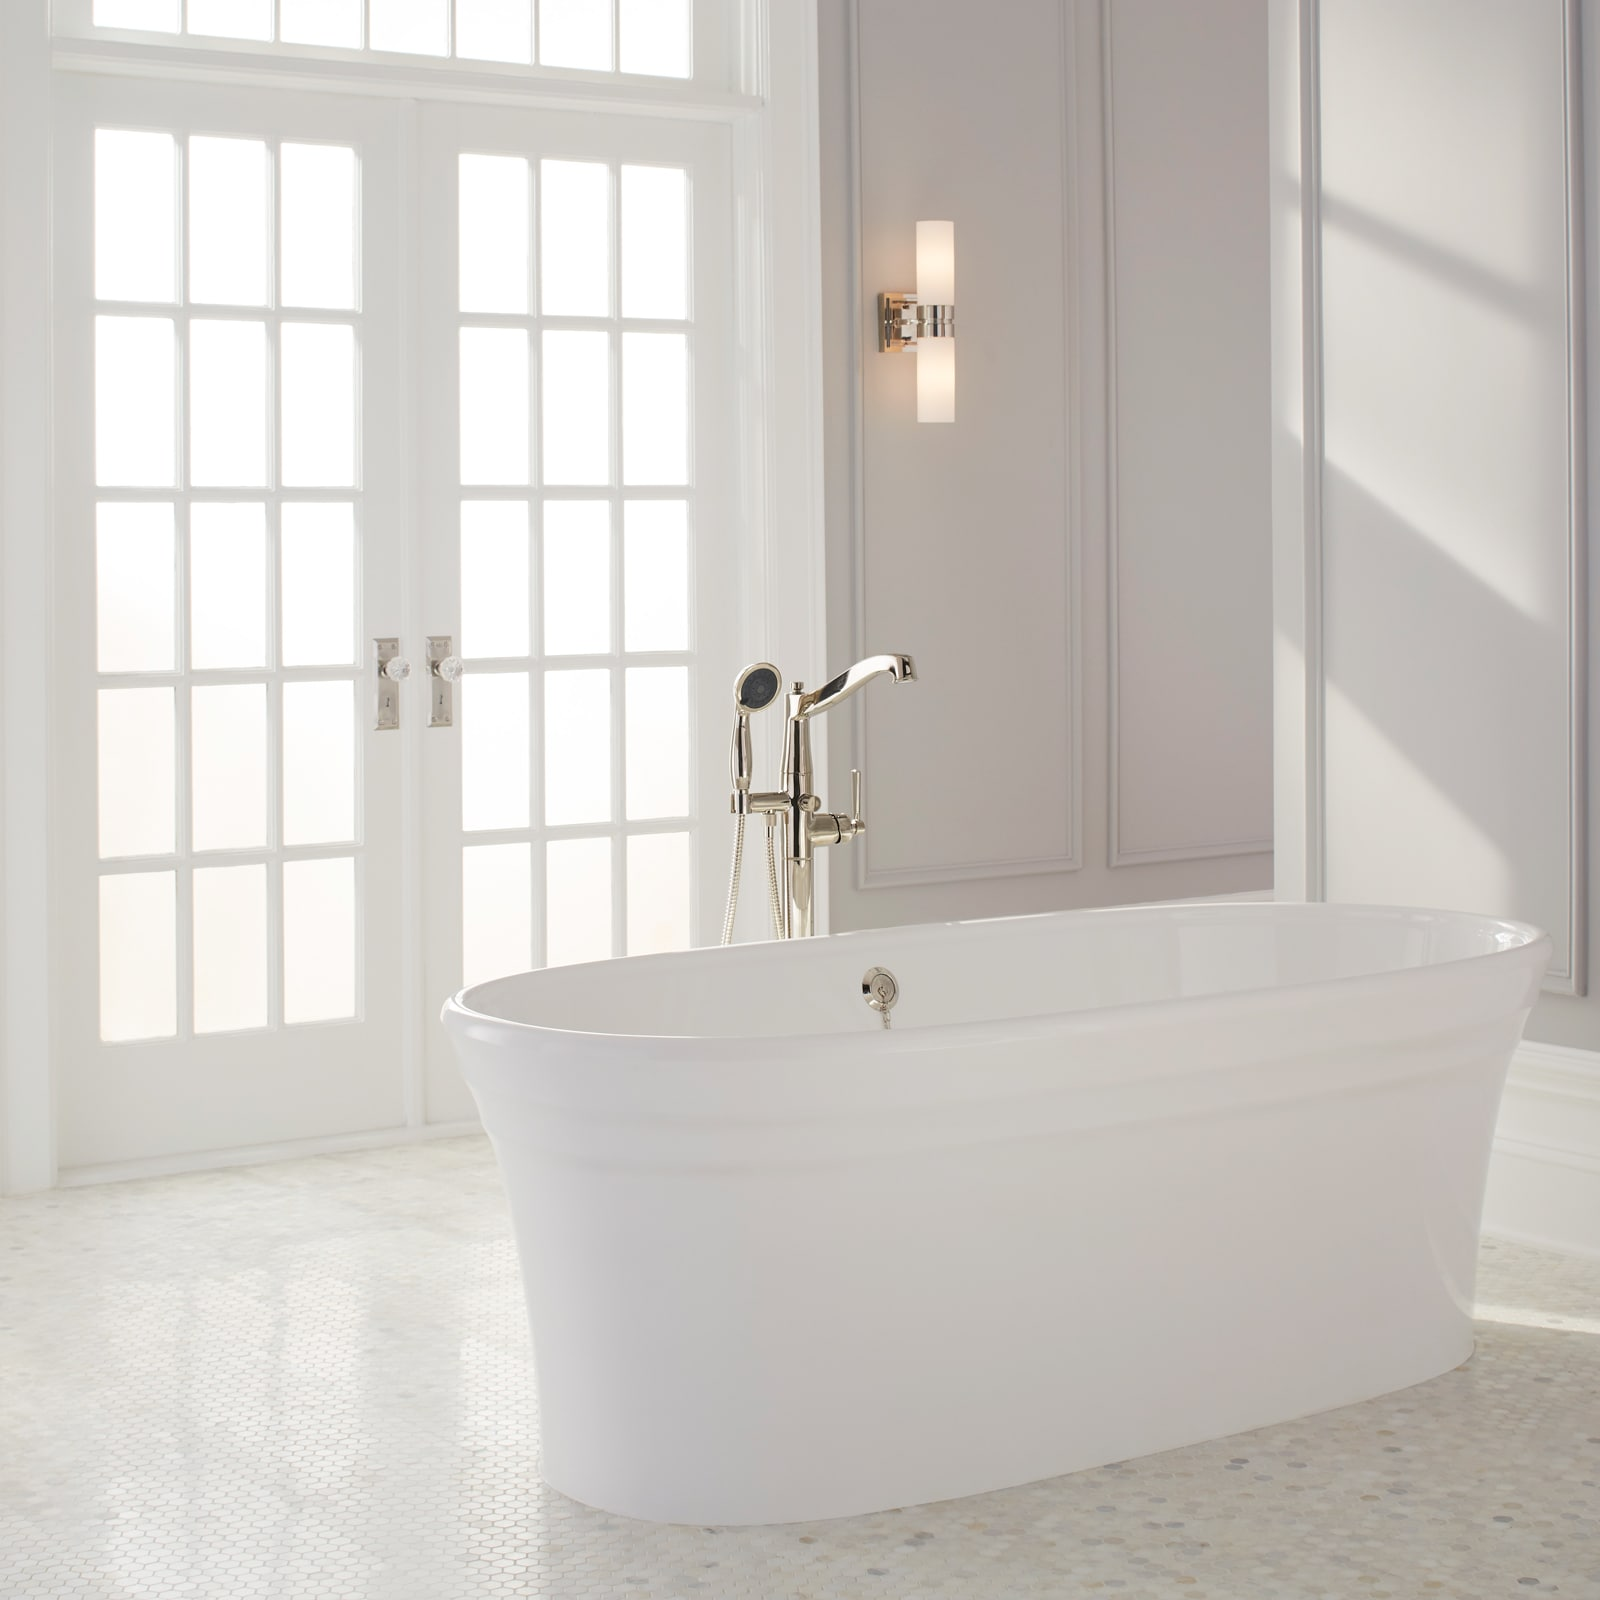 rectangle faucet mirabelle cool shower bathtub captivating white bath floating with small soaking chrome acrylic and combo corner grey tub tubs polished steel oval mat